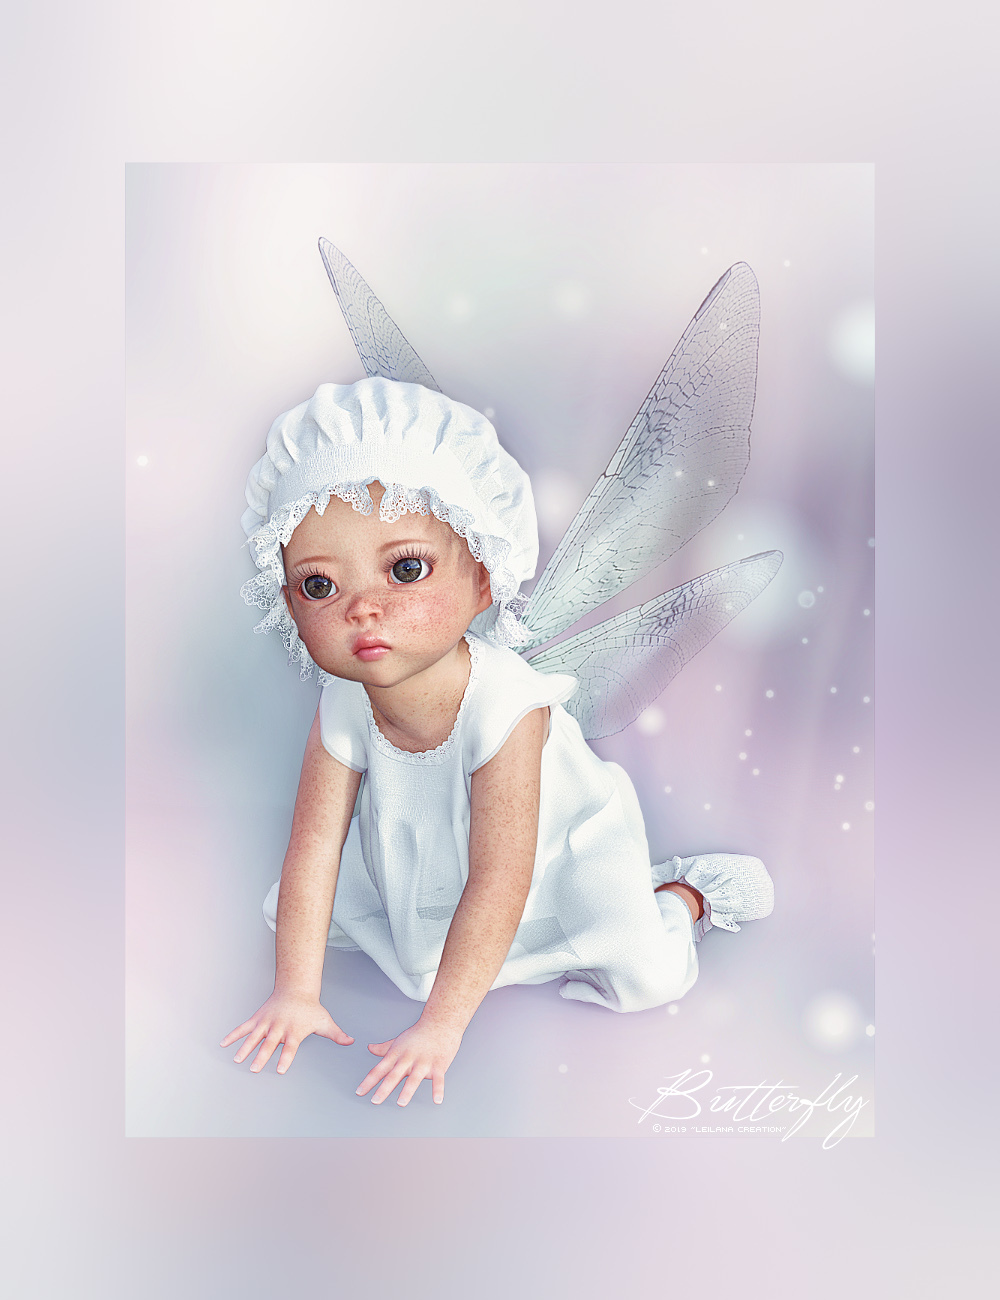 ~*BabyButterfly*~ by Leilana